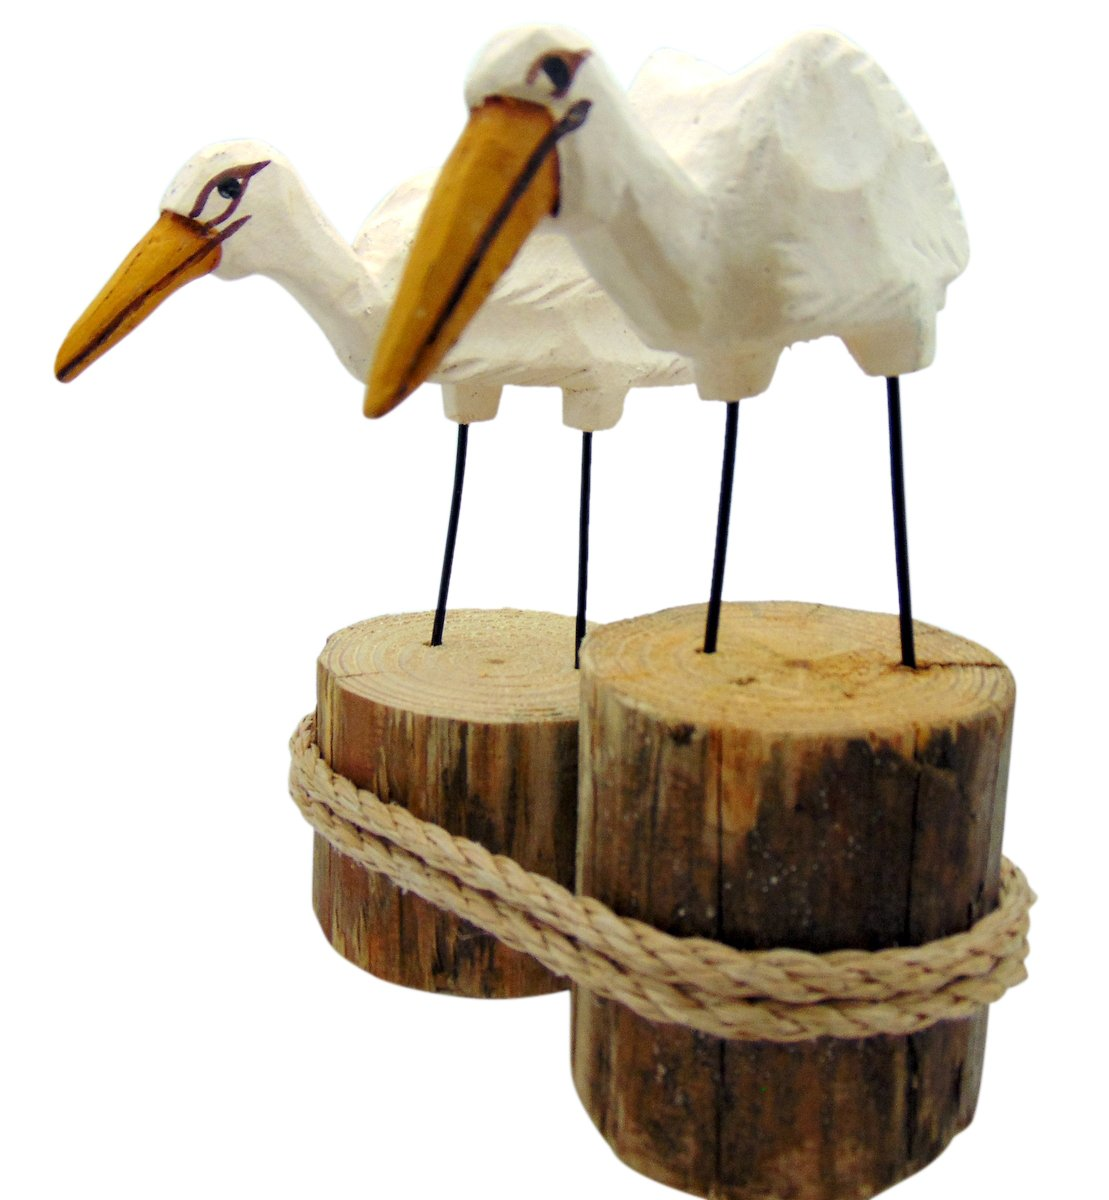 Egret Tropical Birds on Piling Hand Carved Wooden Figurine 6 Inches High Made in the USA